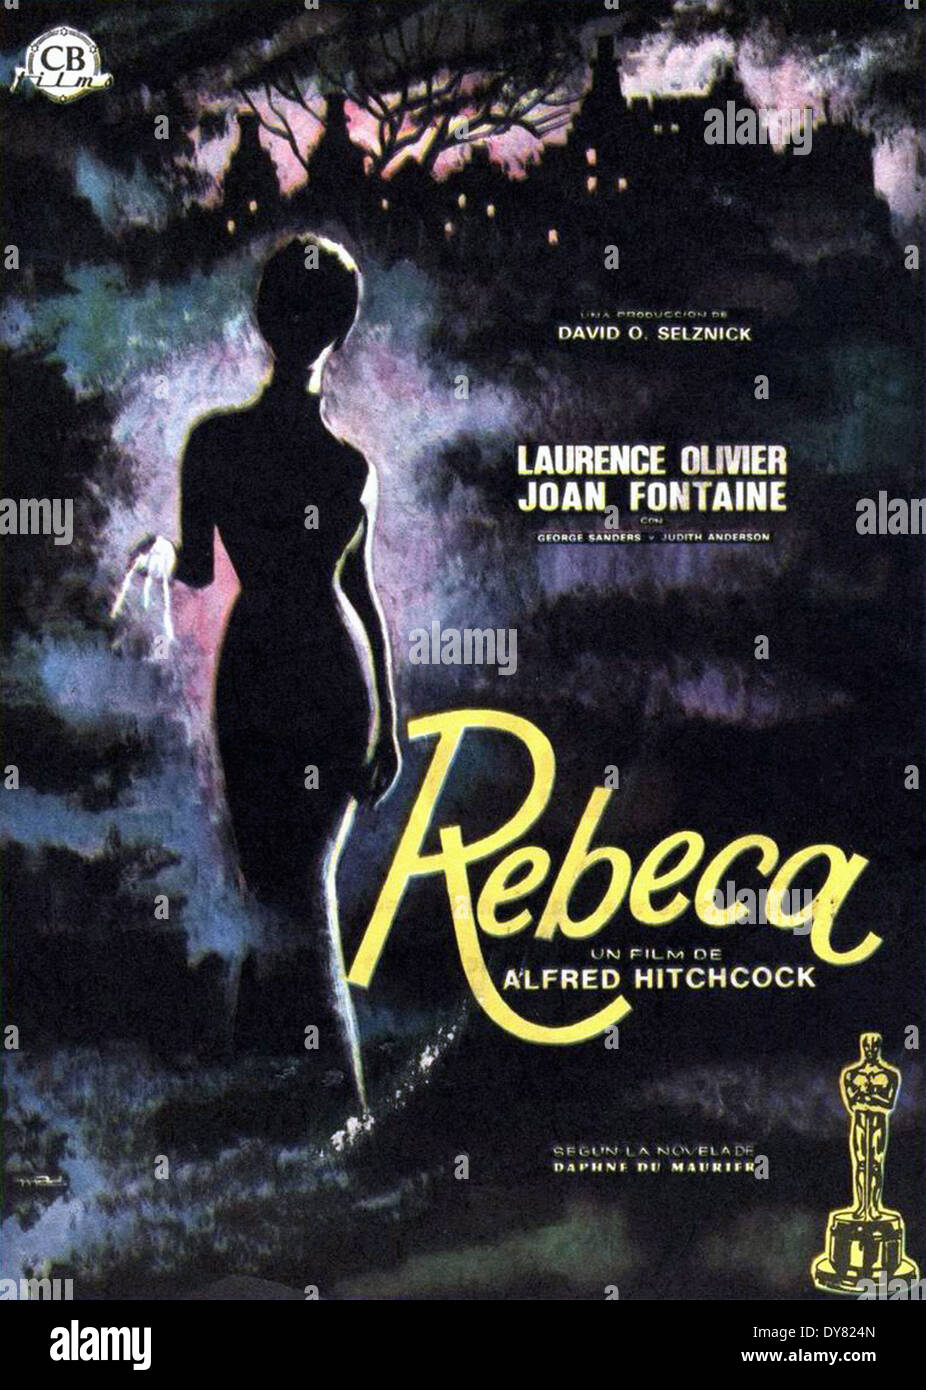 rebecca-spanish-movie-poster-directed-by-alfred-hitchcock-united-artists-DY824N.jpg